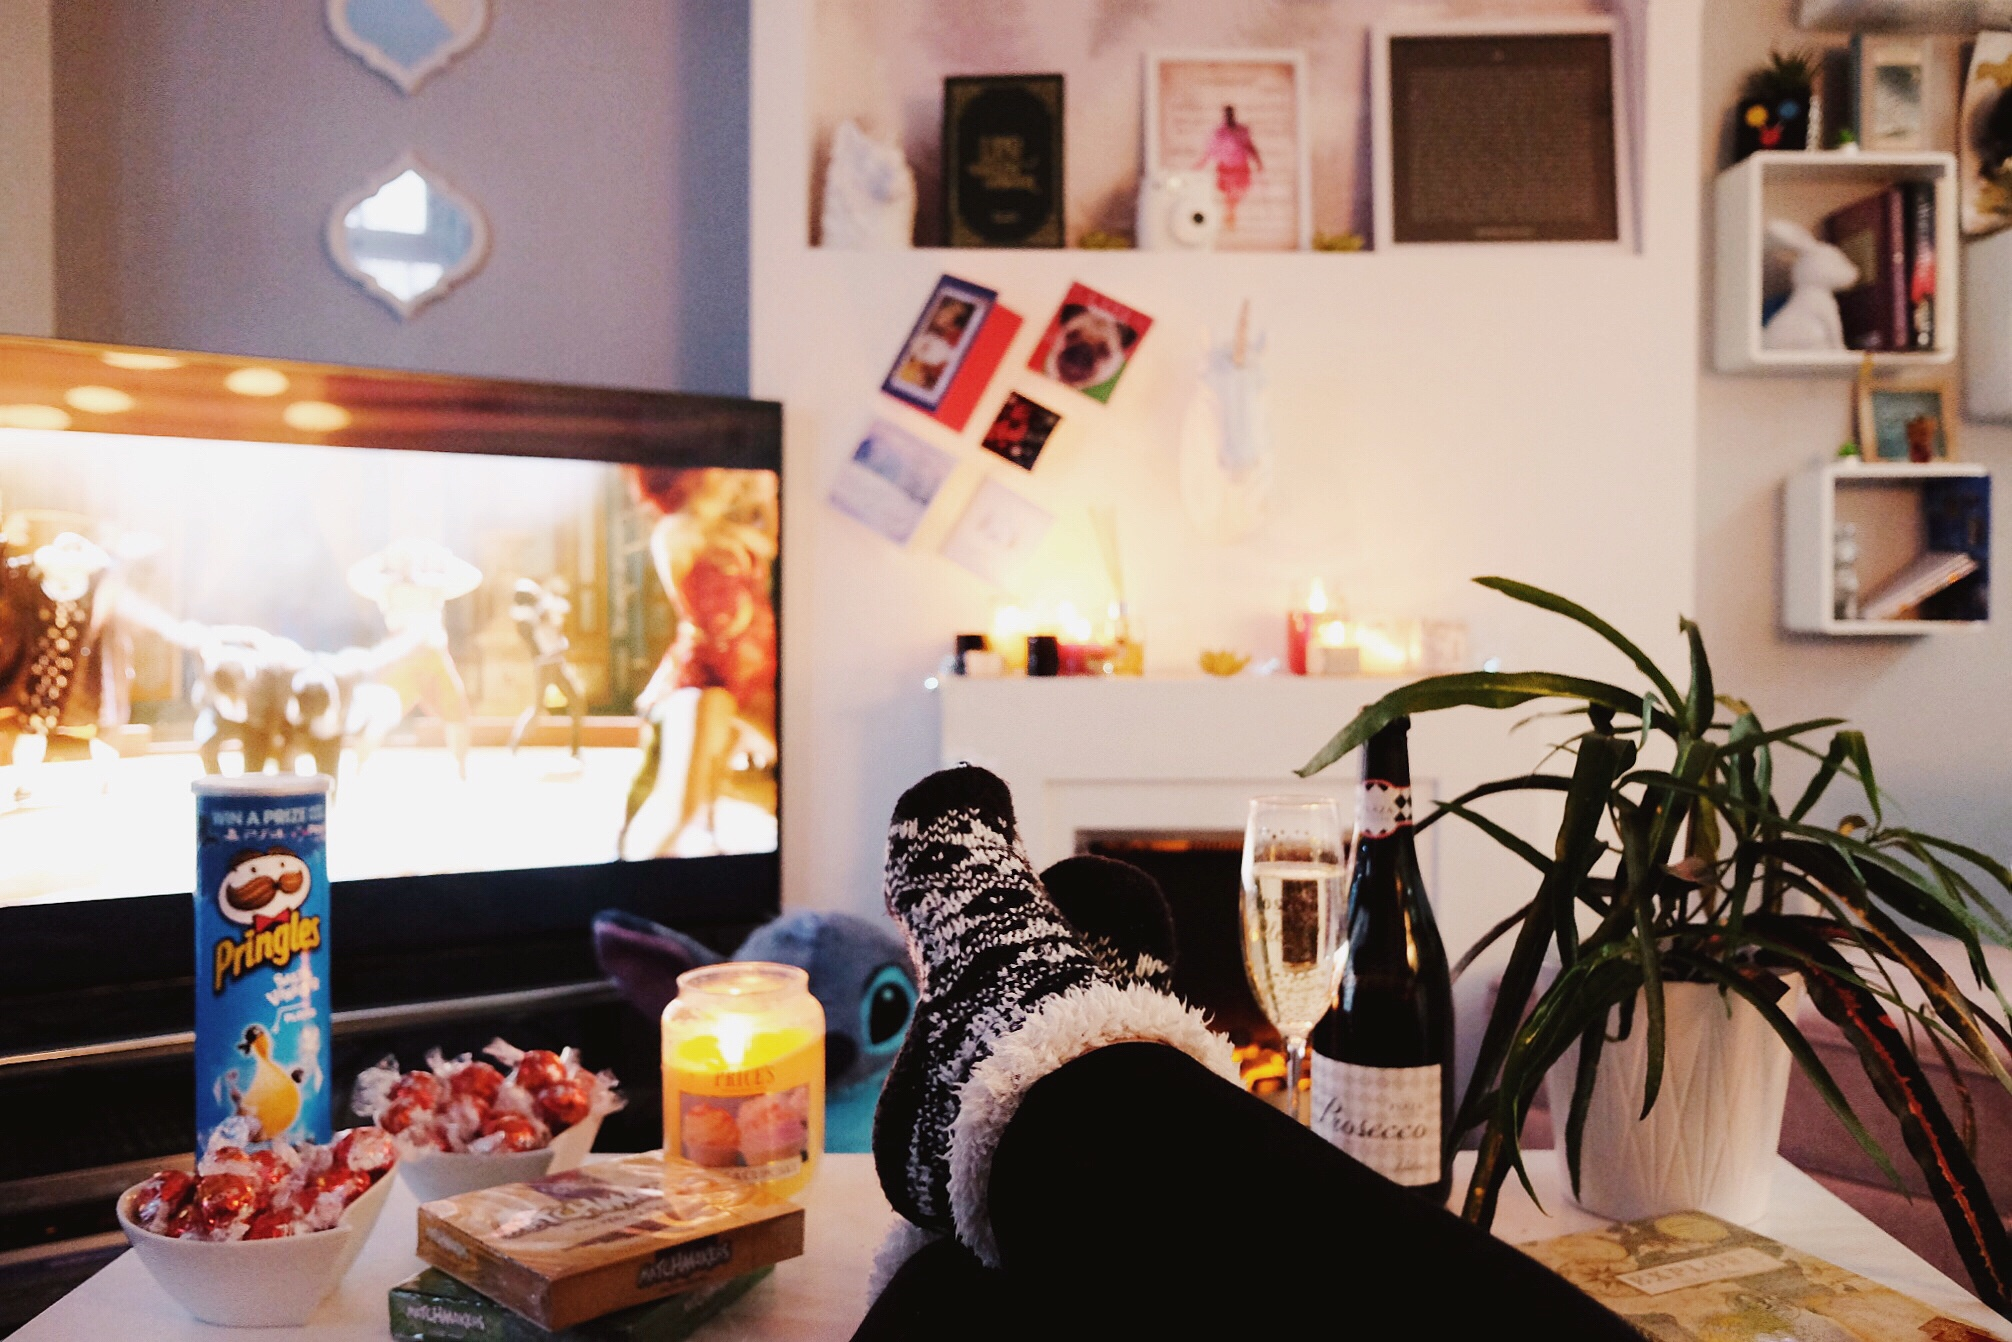 A guide to the perfect cosy night in for one